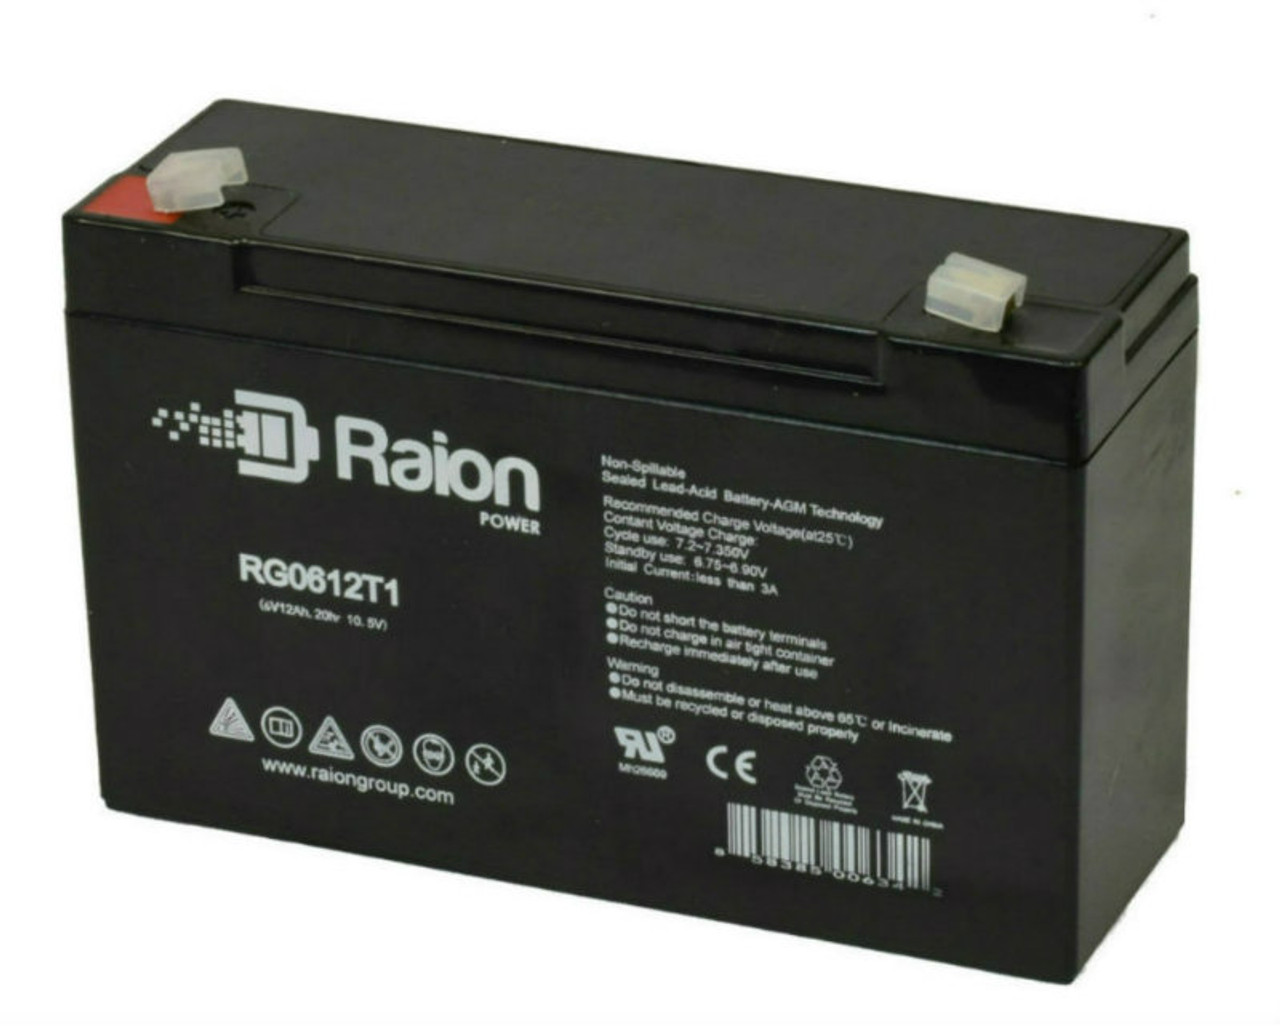 Raion Power RG06120T1 Replacement Battery Pack for Sonnenschein 113302008 emergency light